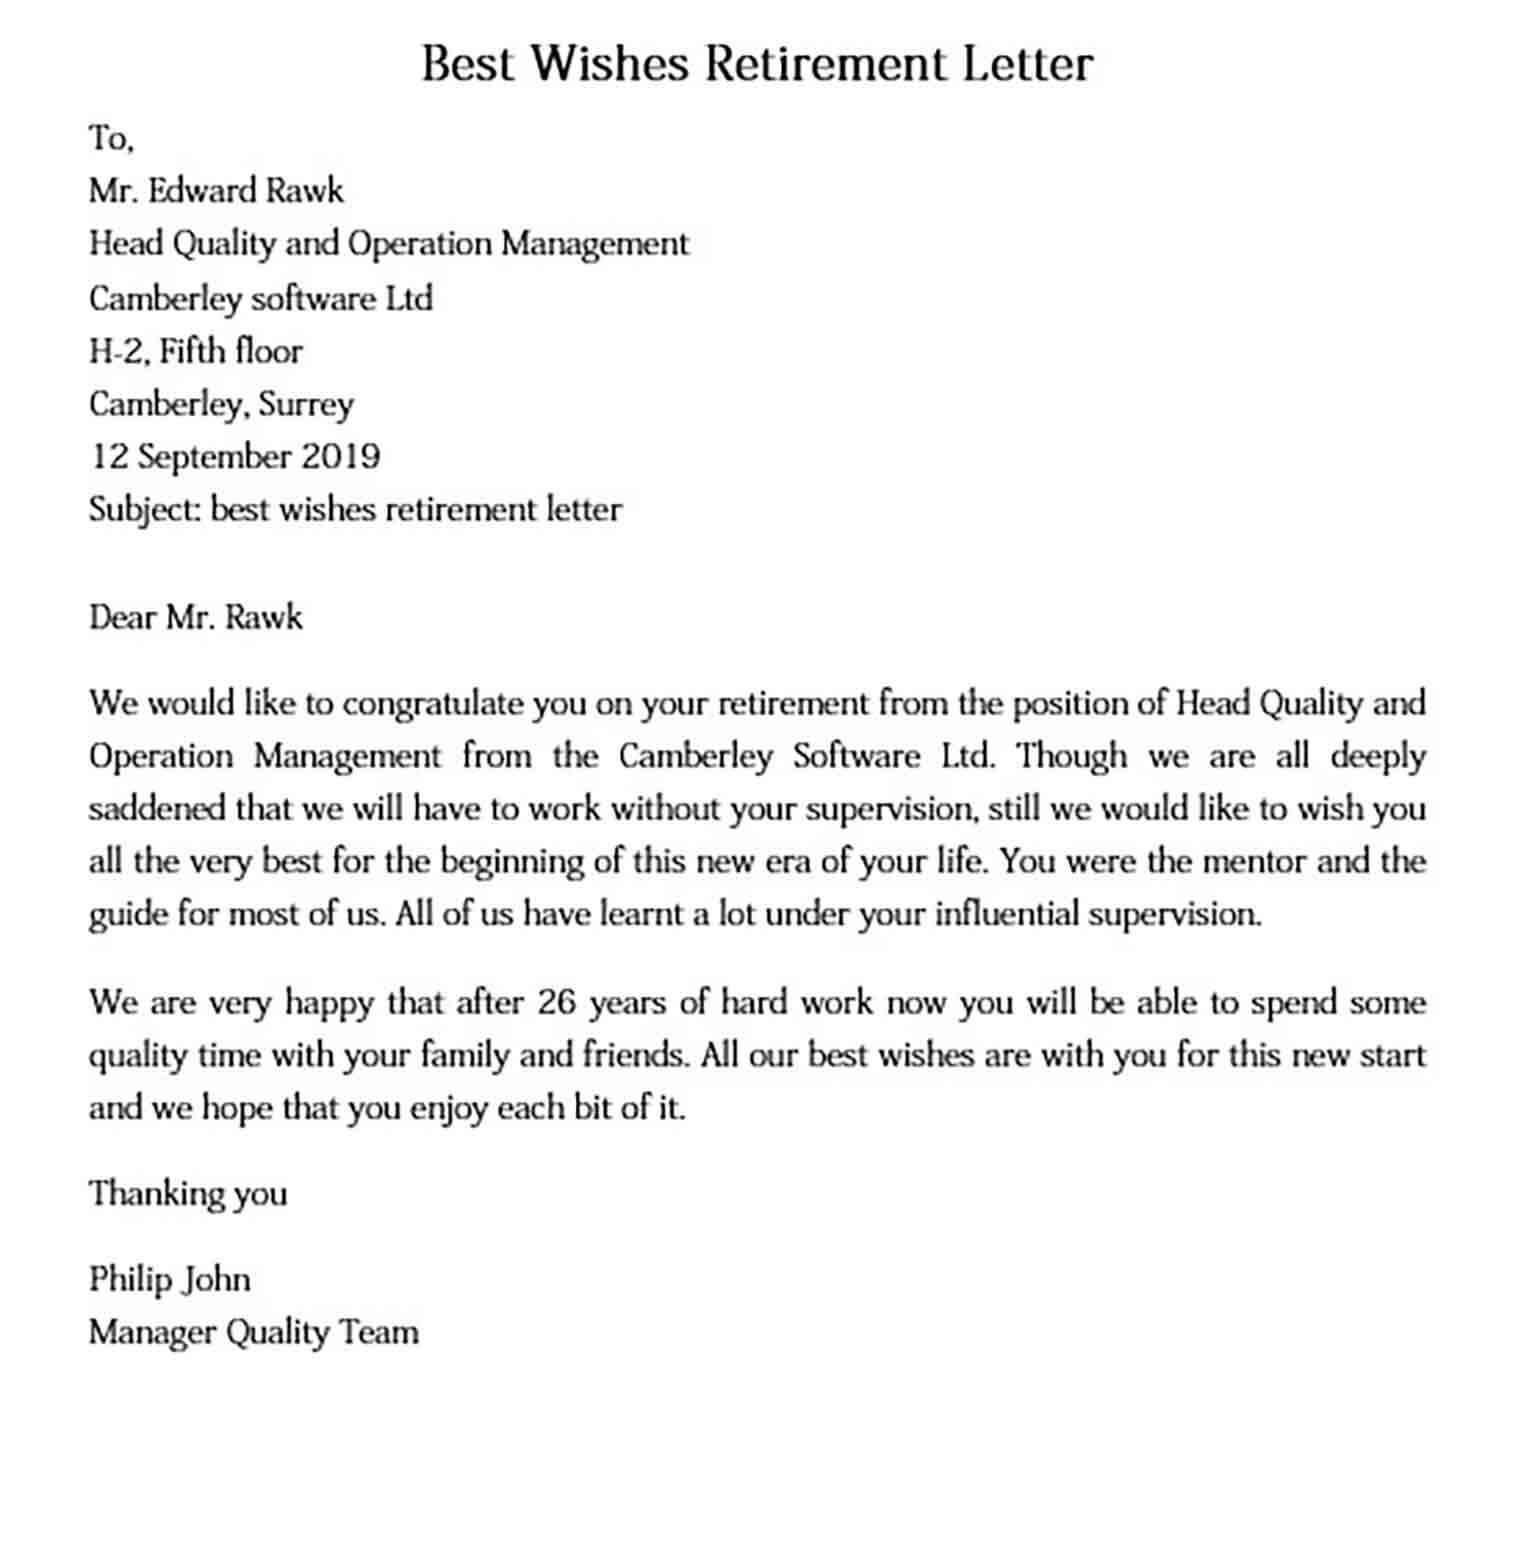 Best Wishes Retirement Letter